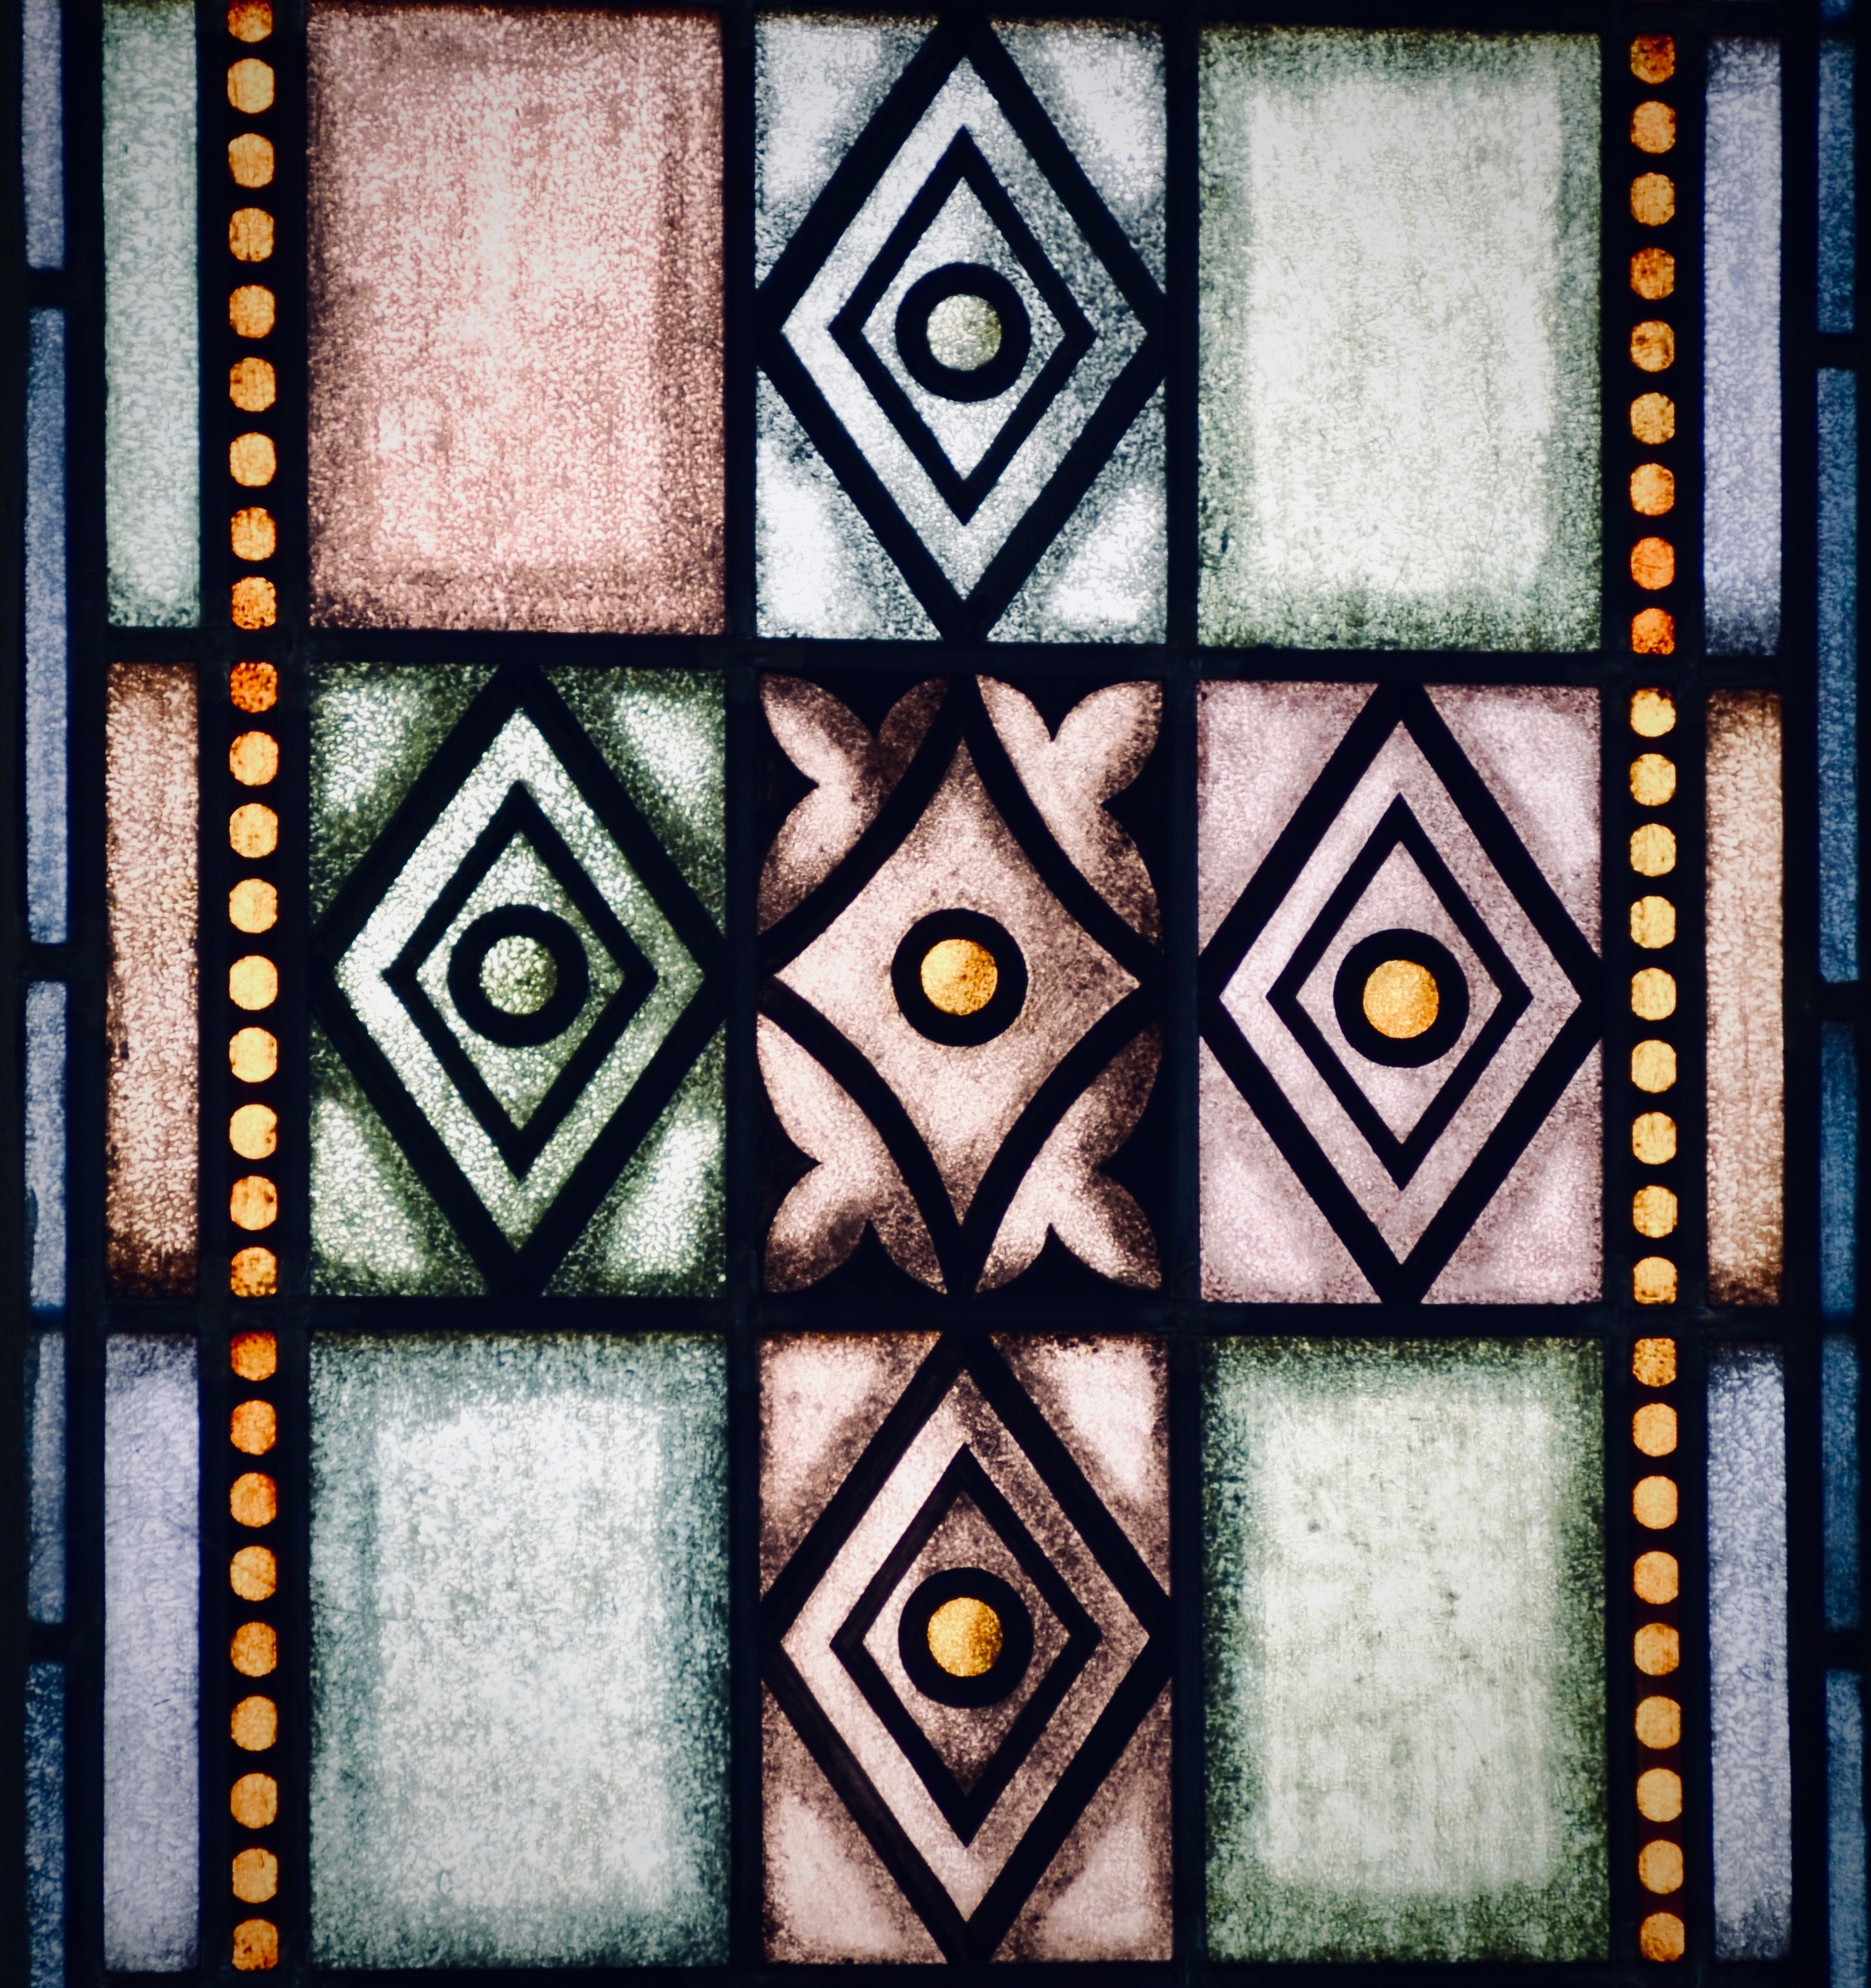 Stained glass detail, Bachkirche, Arnstadt.